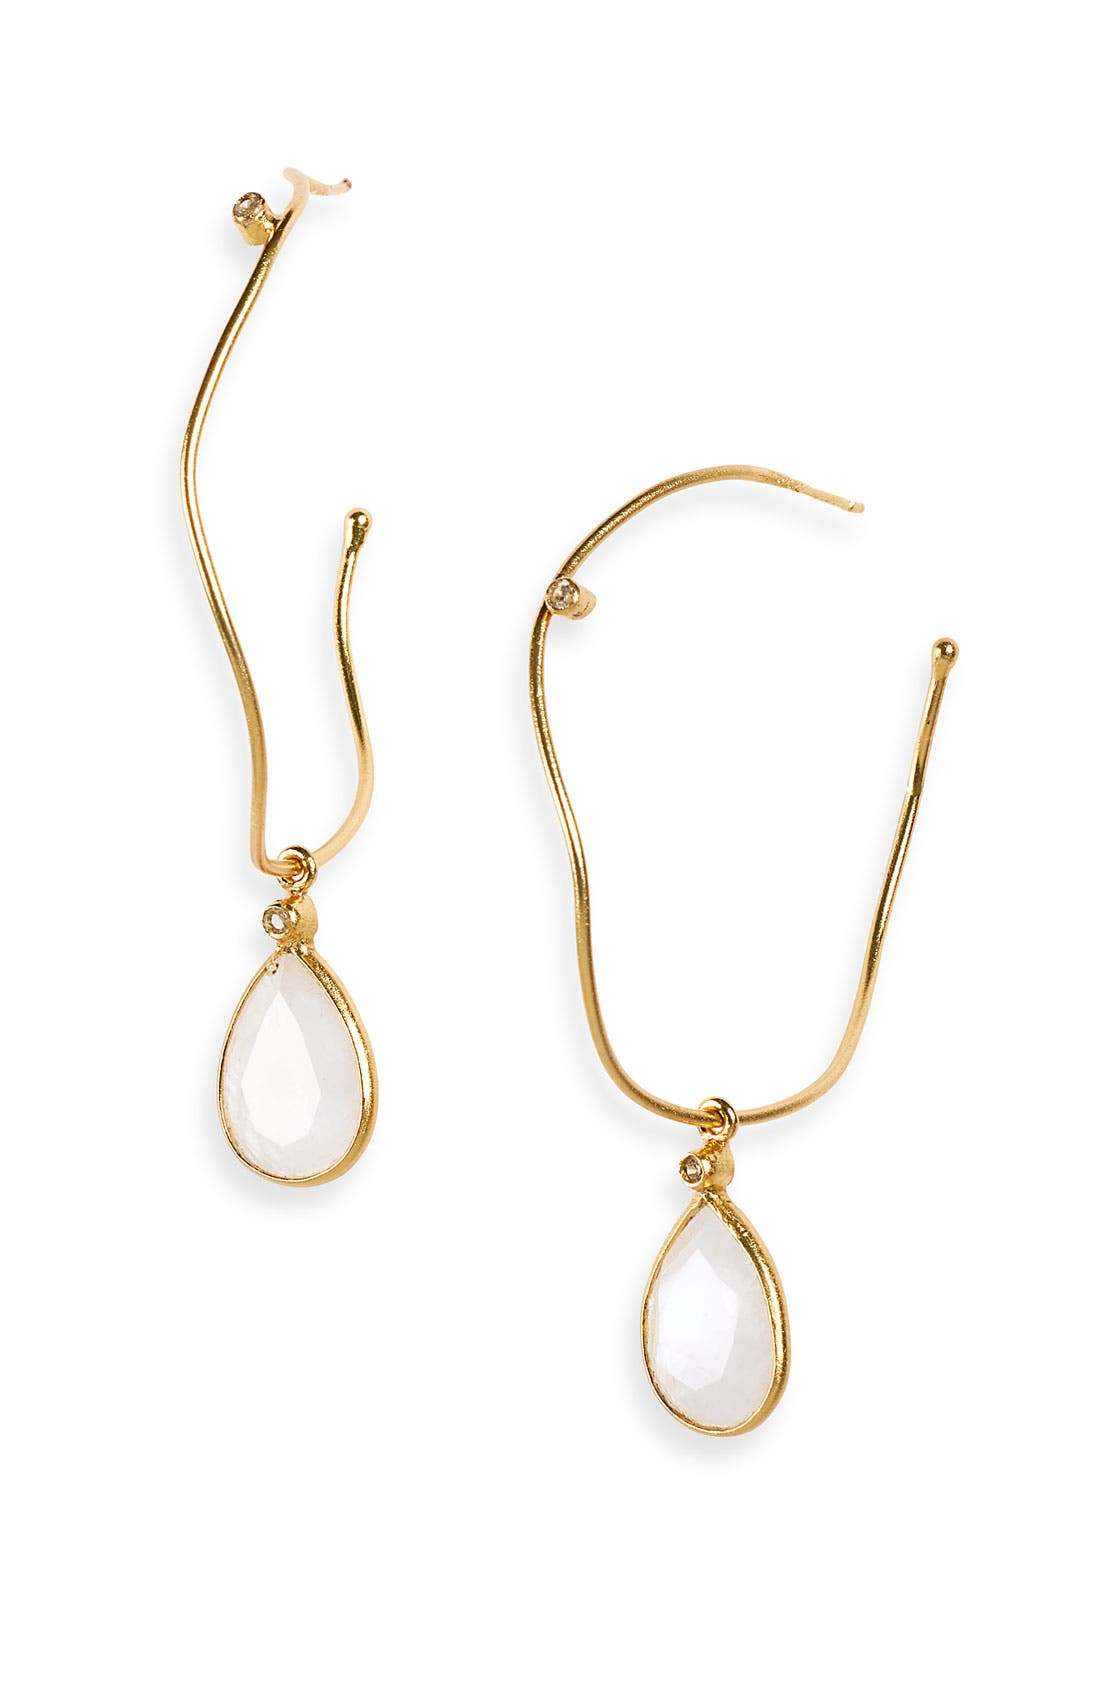 Alternate Image 1 Selected - NuNu Designs Semiprecious Drop Hoop Earrings